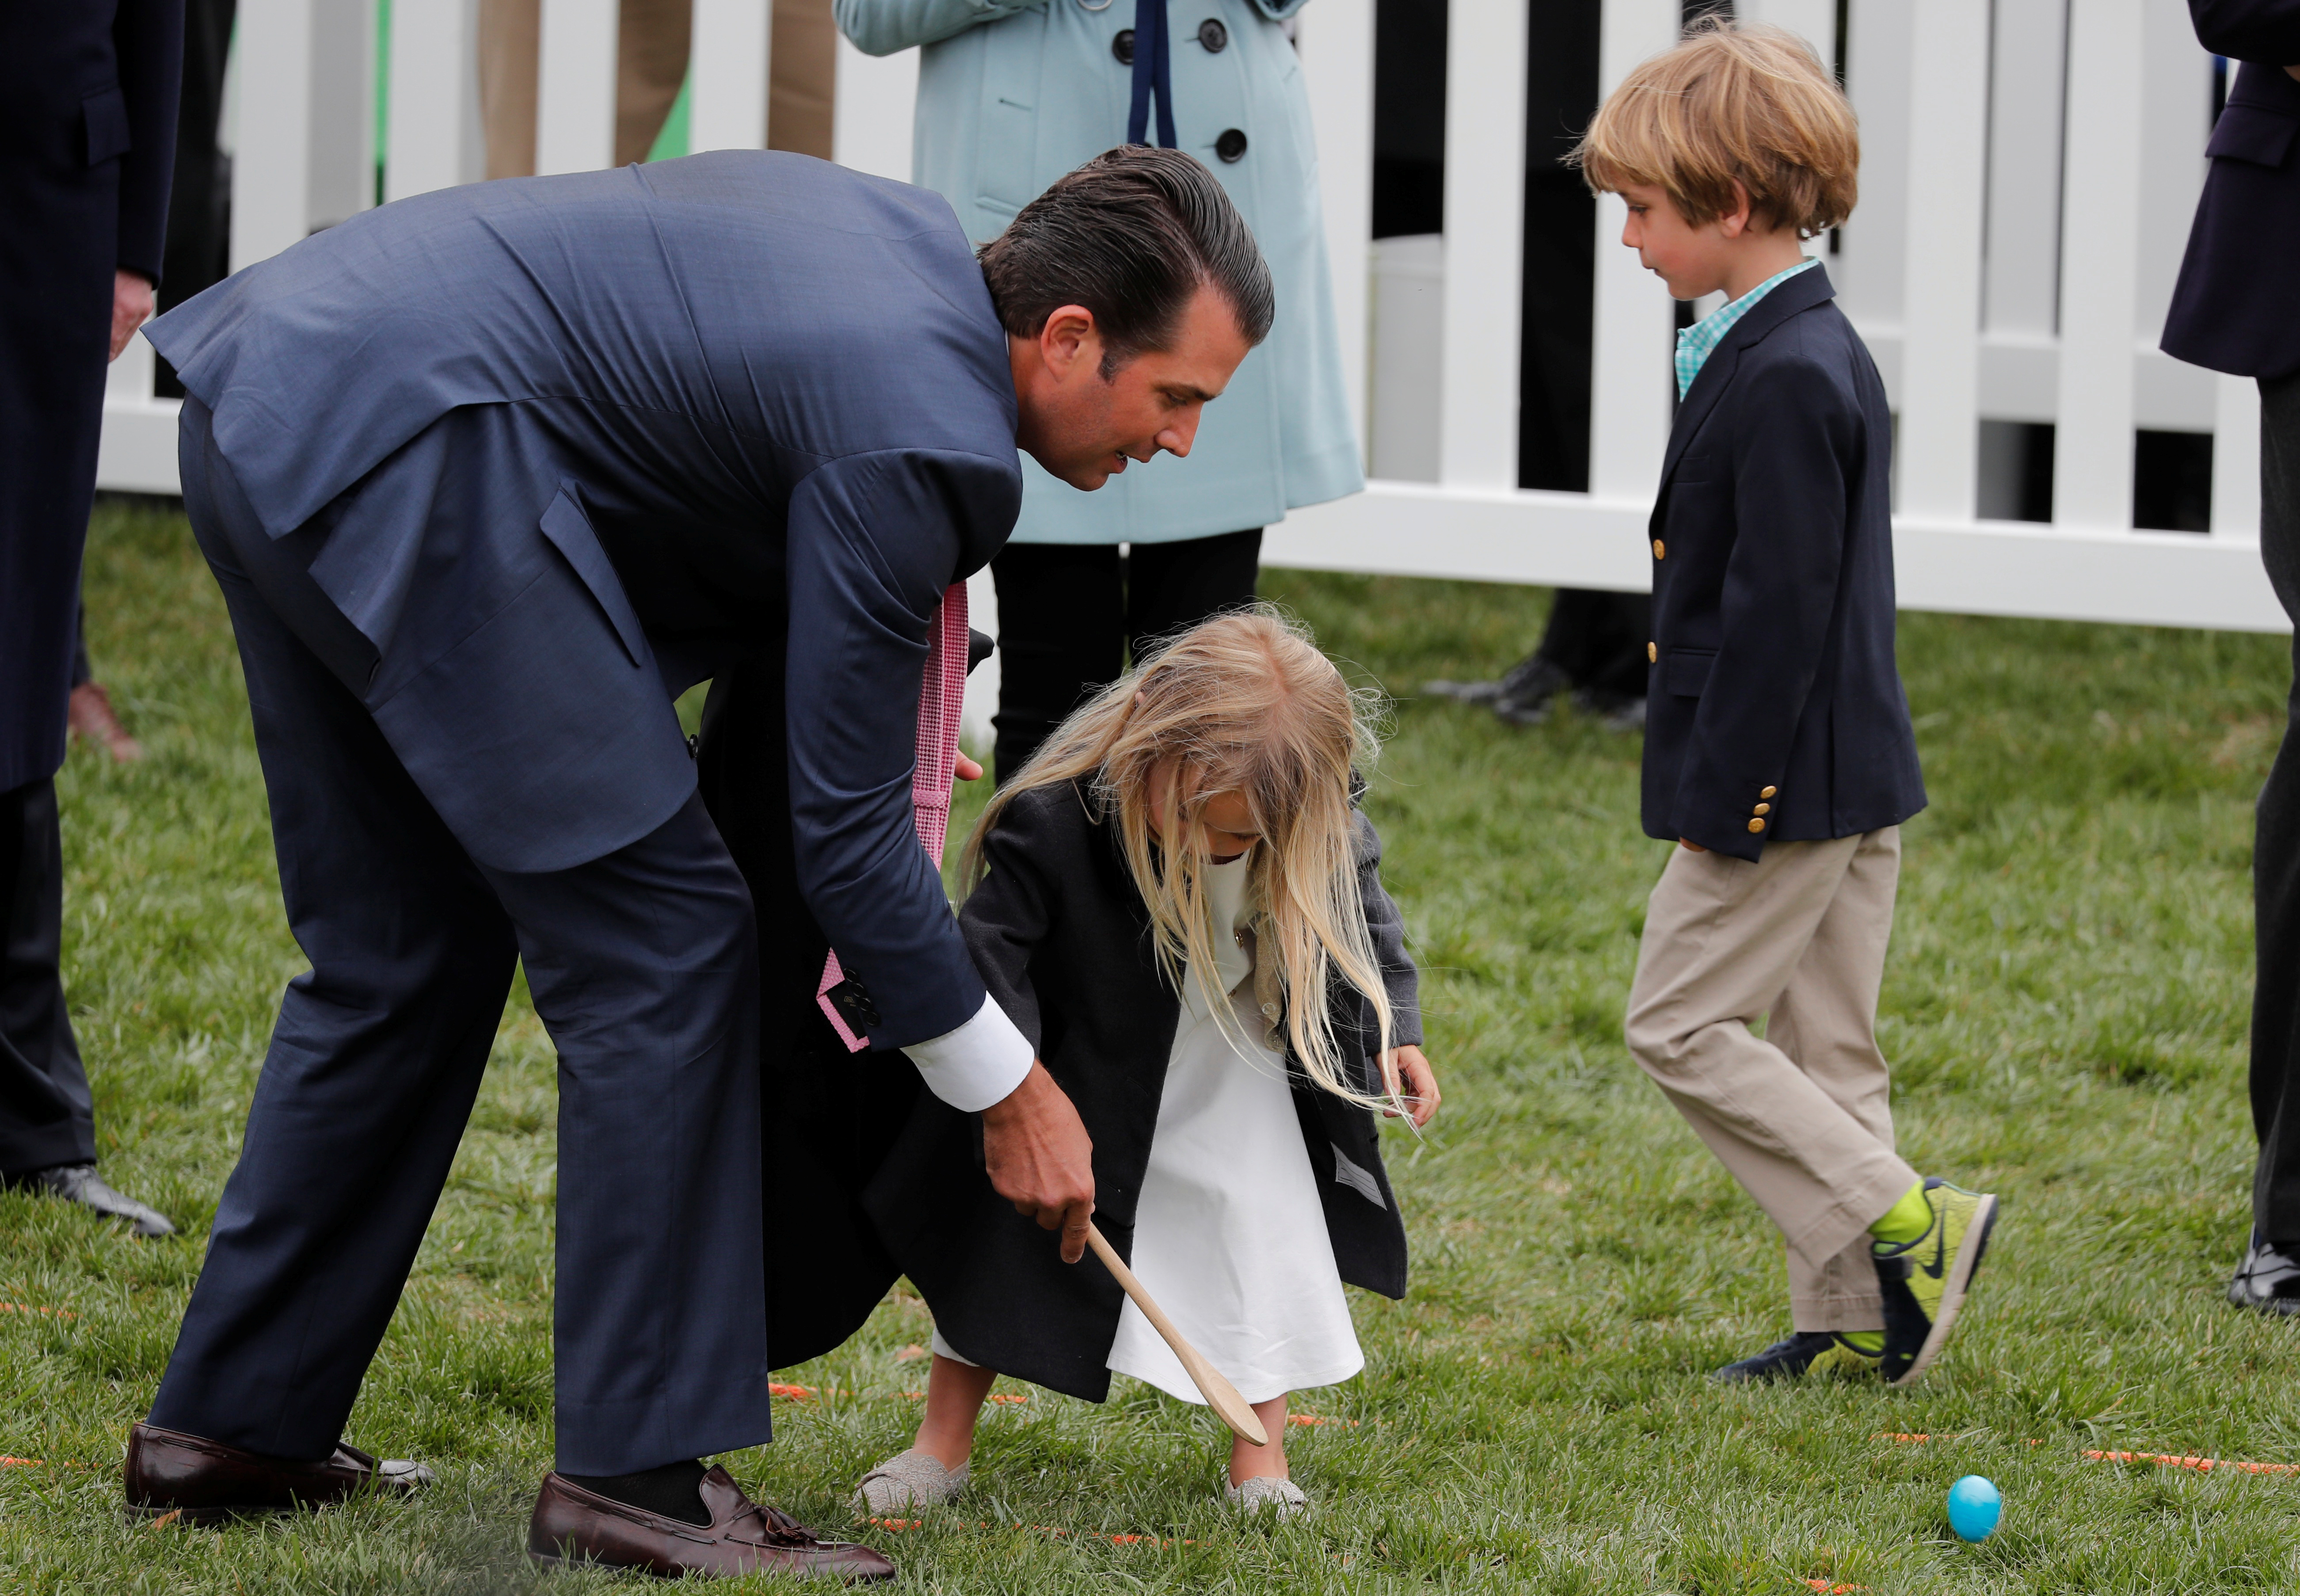 Donald Trump Jr helps his daughter Chloe roll an egg during the annual White House Easter Egg Roll on the South Lawn of the White House in Washington, U.S., April 2, 2018. REUTERS/Carlos Barria